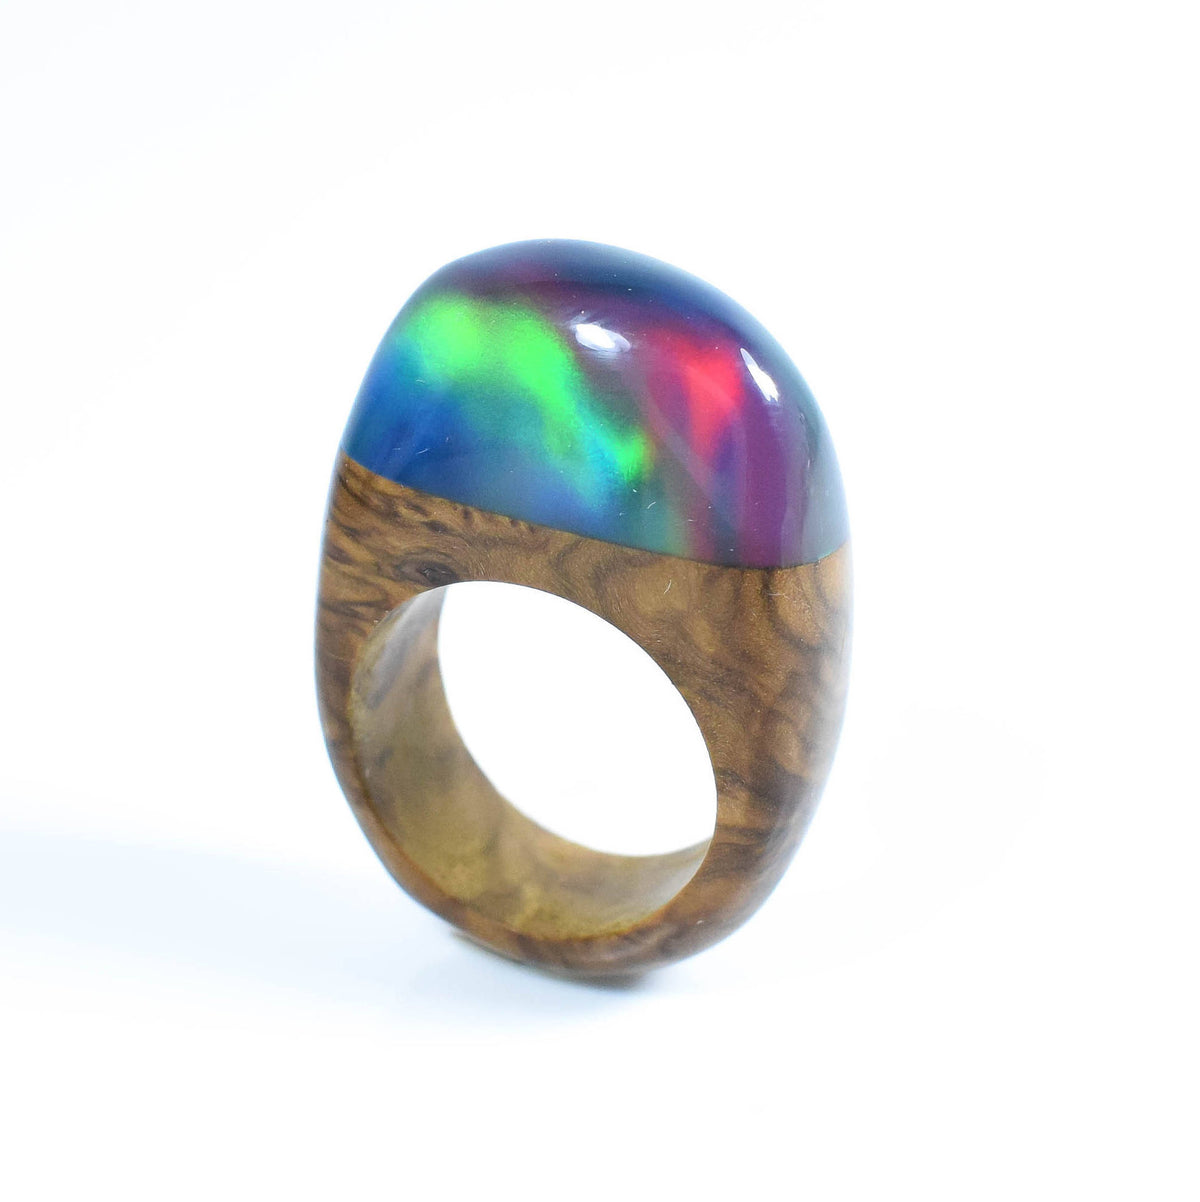 Unusual Ring, Northern lights, Lab created Opal Ring, Colour shifting ring, Boho ring, ArtfulResin, Special Birthday, Statement Ring